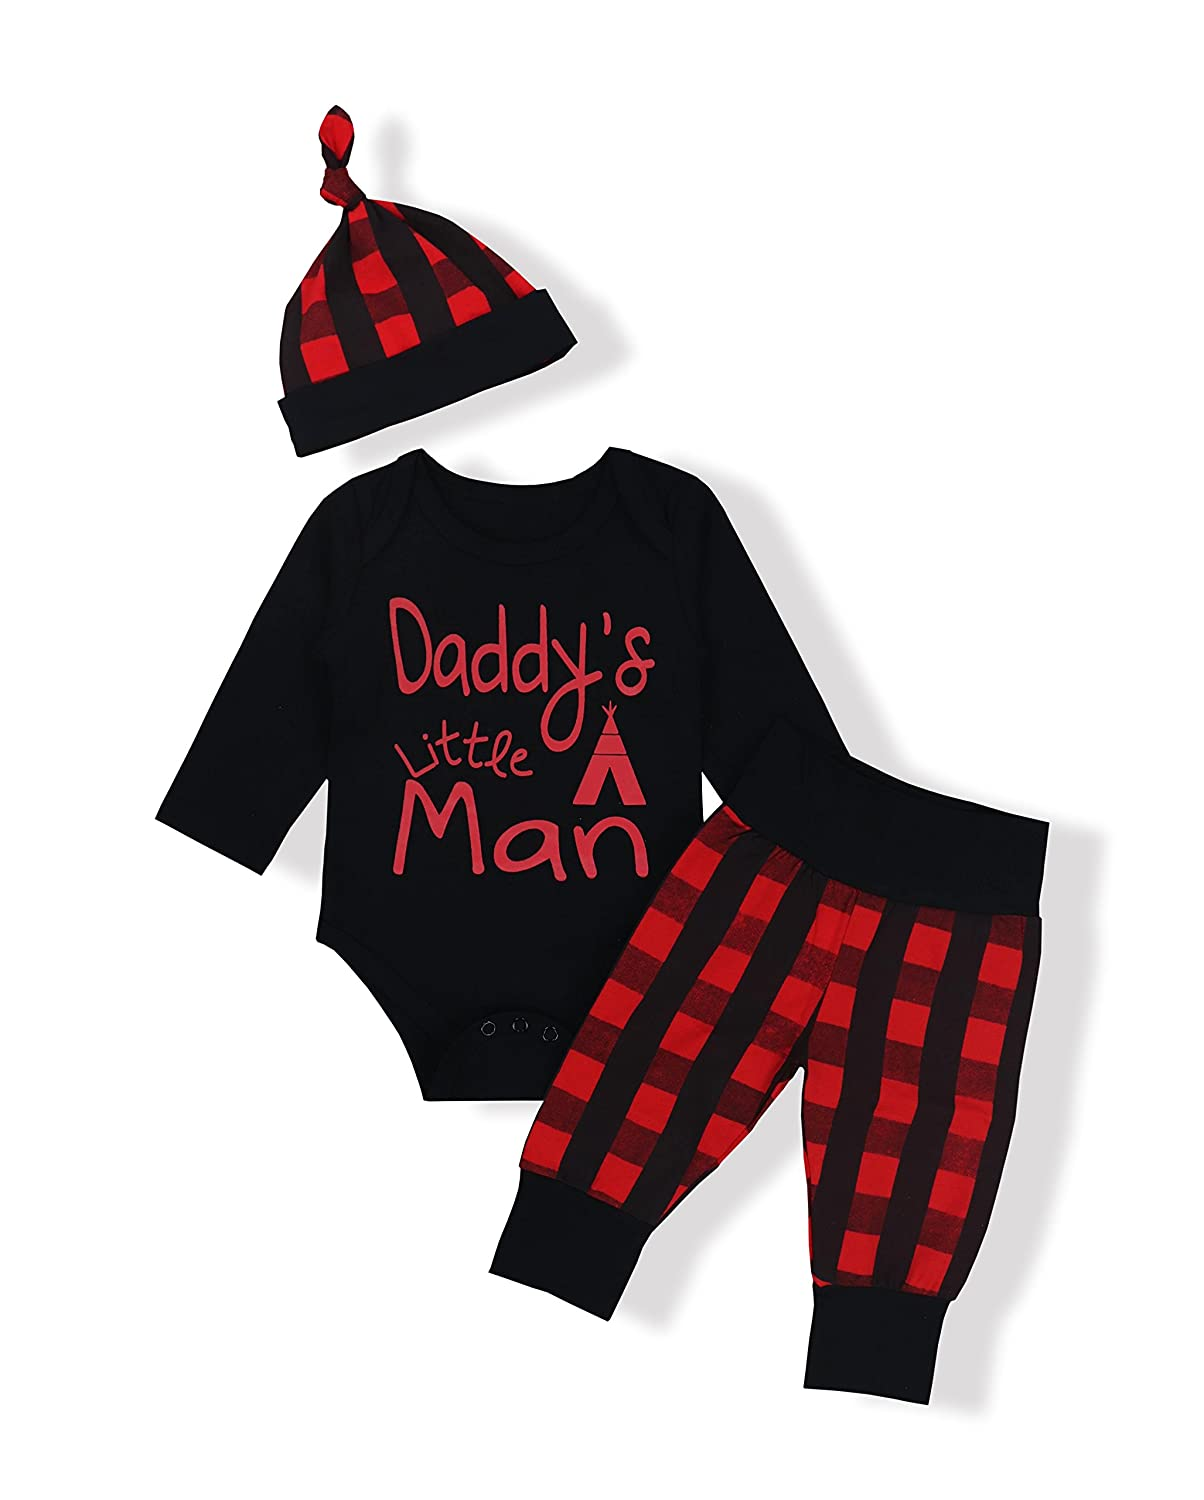 866202e0d48 Amazon.com: Newborn Baby Boy Girl Clothes Long Sleeve Cute Onesie Camo  Pants with Hat Outfit Set: Clothing